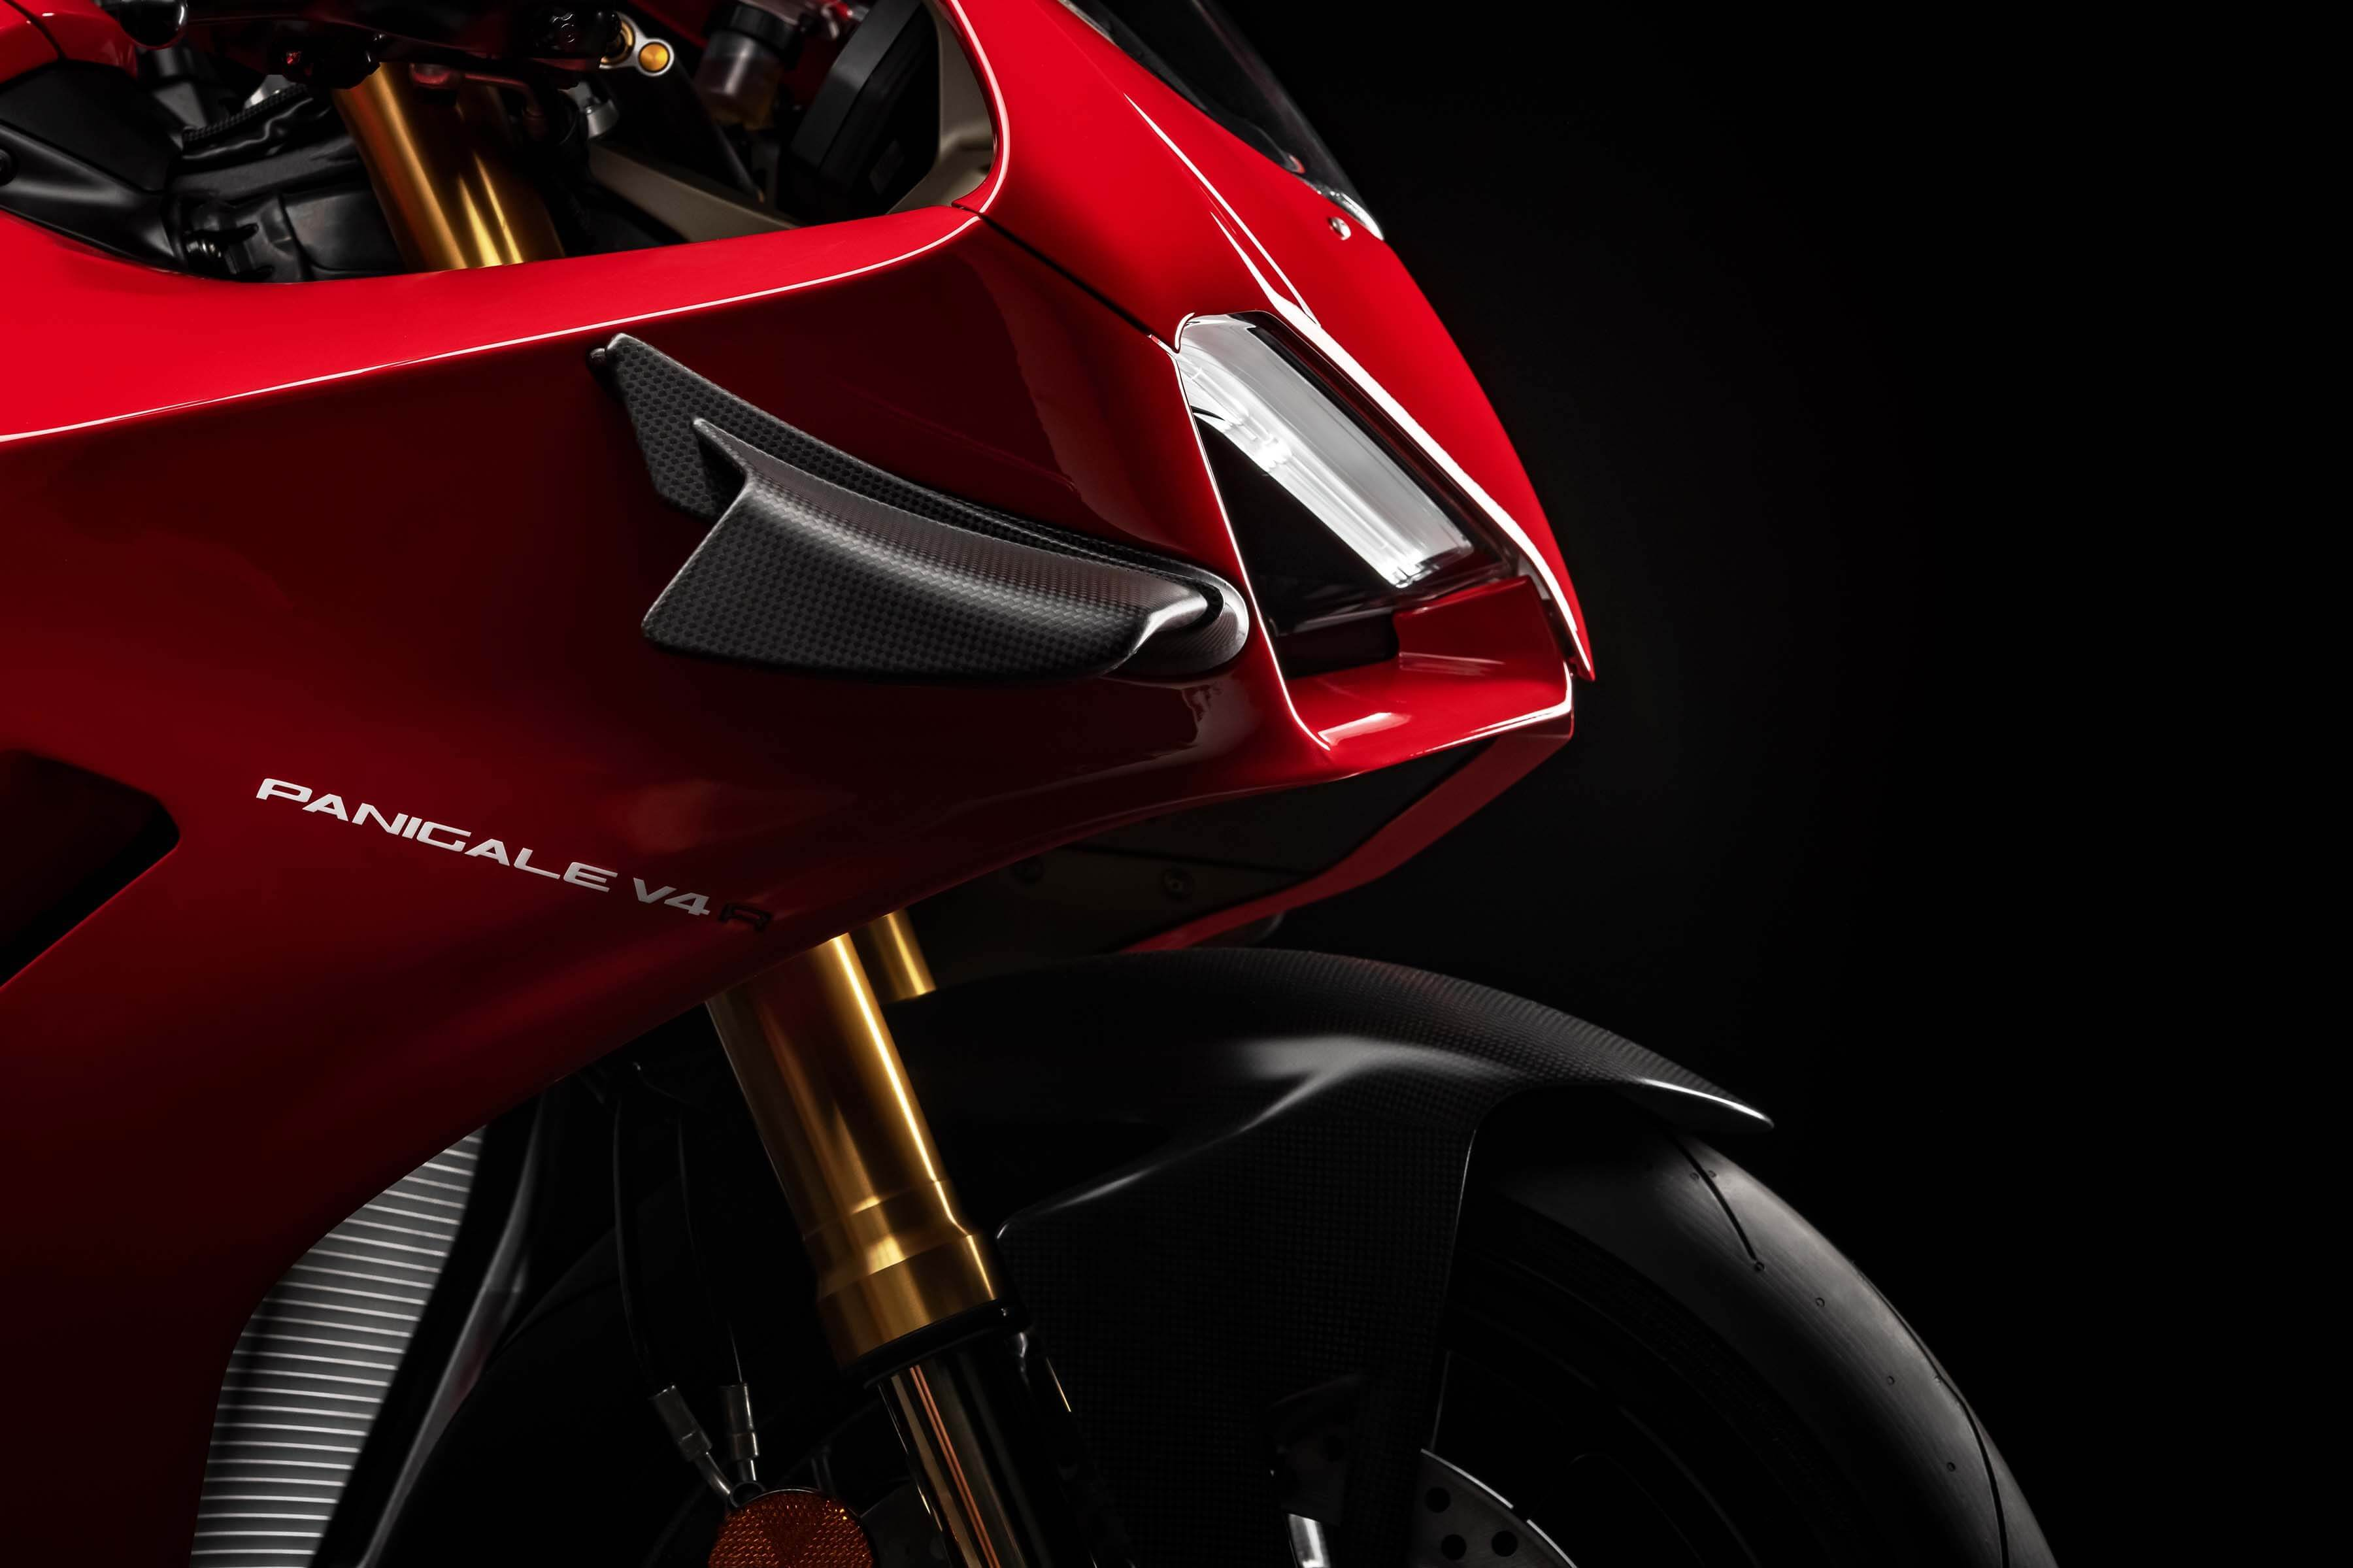 Ducati Panigale V4R Build Quality And Reliability